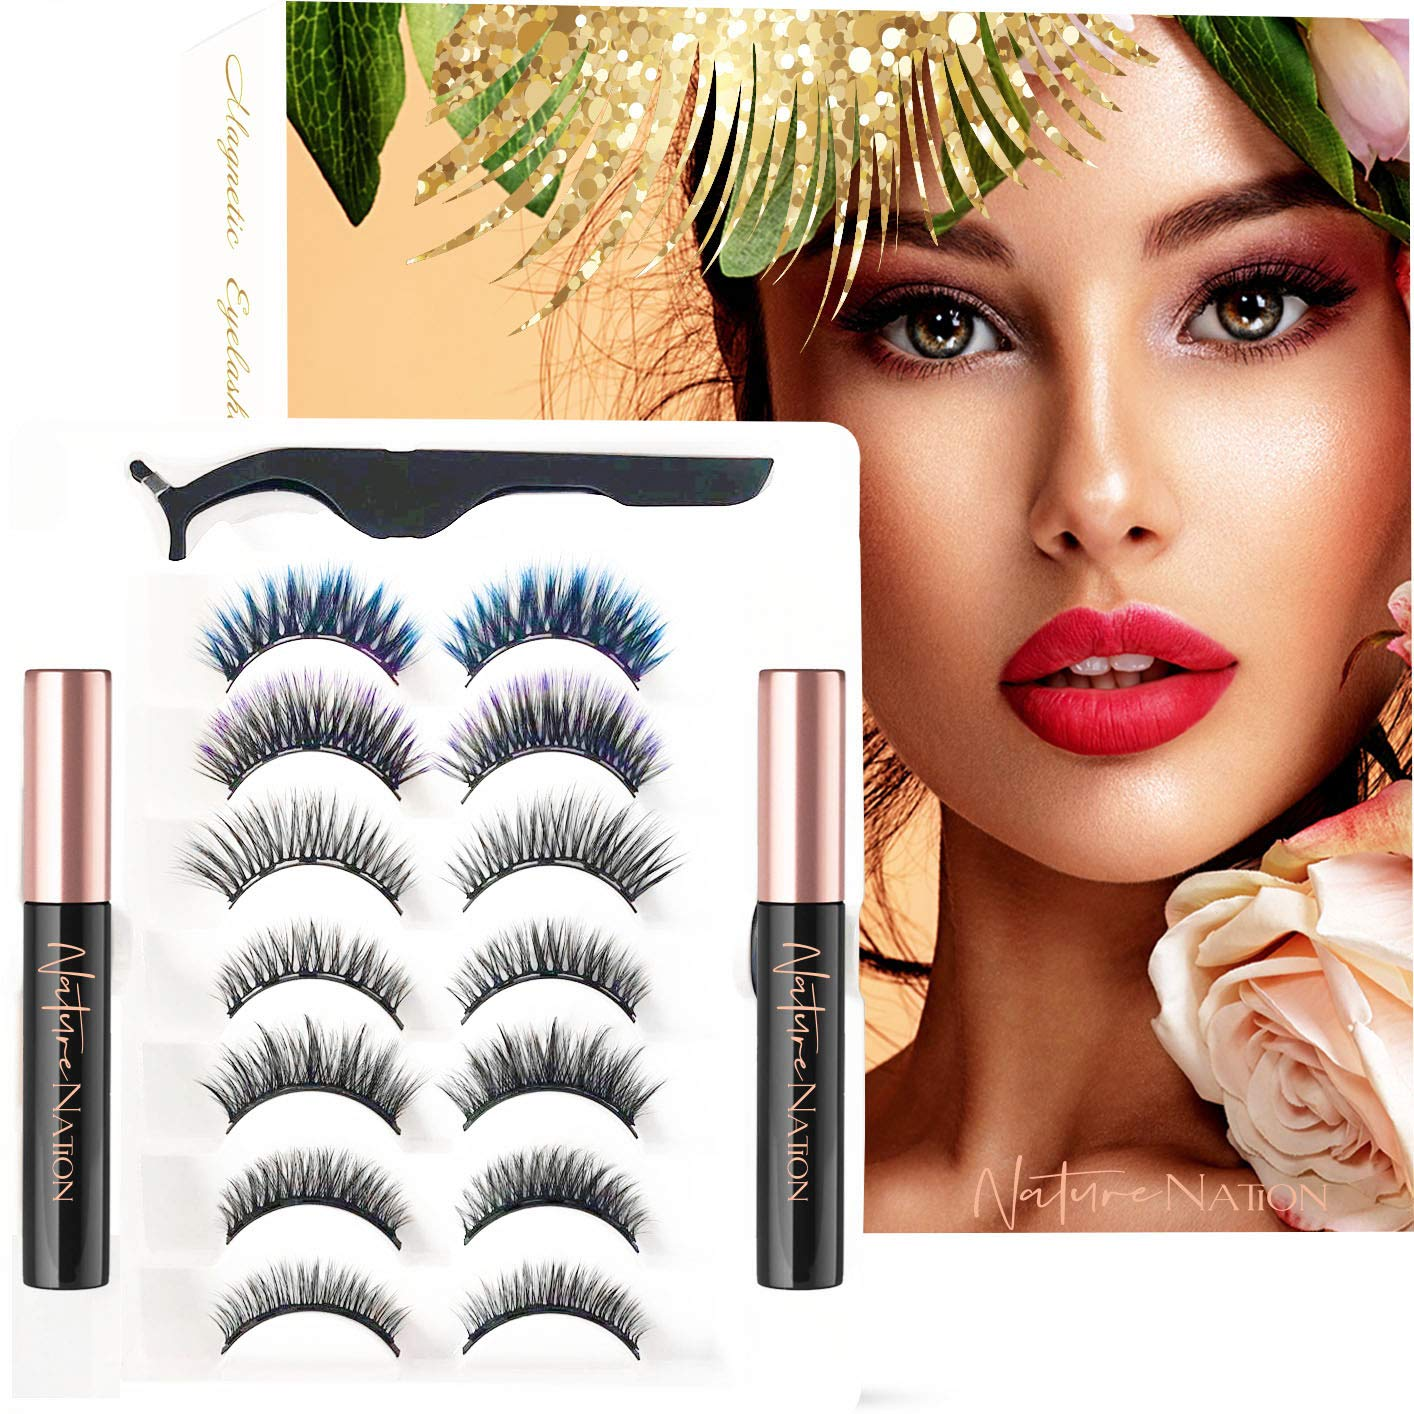 Nature Nation 5D Magnetic Eyelashes and Eyeliner Kit with 2 Colorful Eyelashes, 7 Pairs Different Styles Reusable, Korean Materials, No Glue Needed